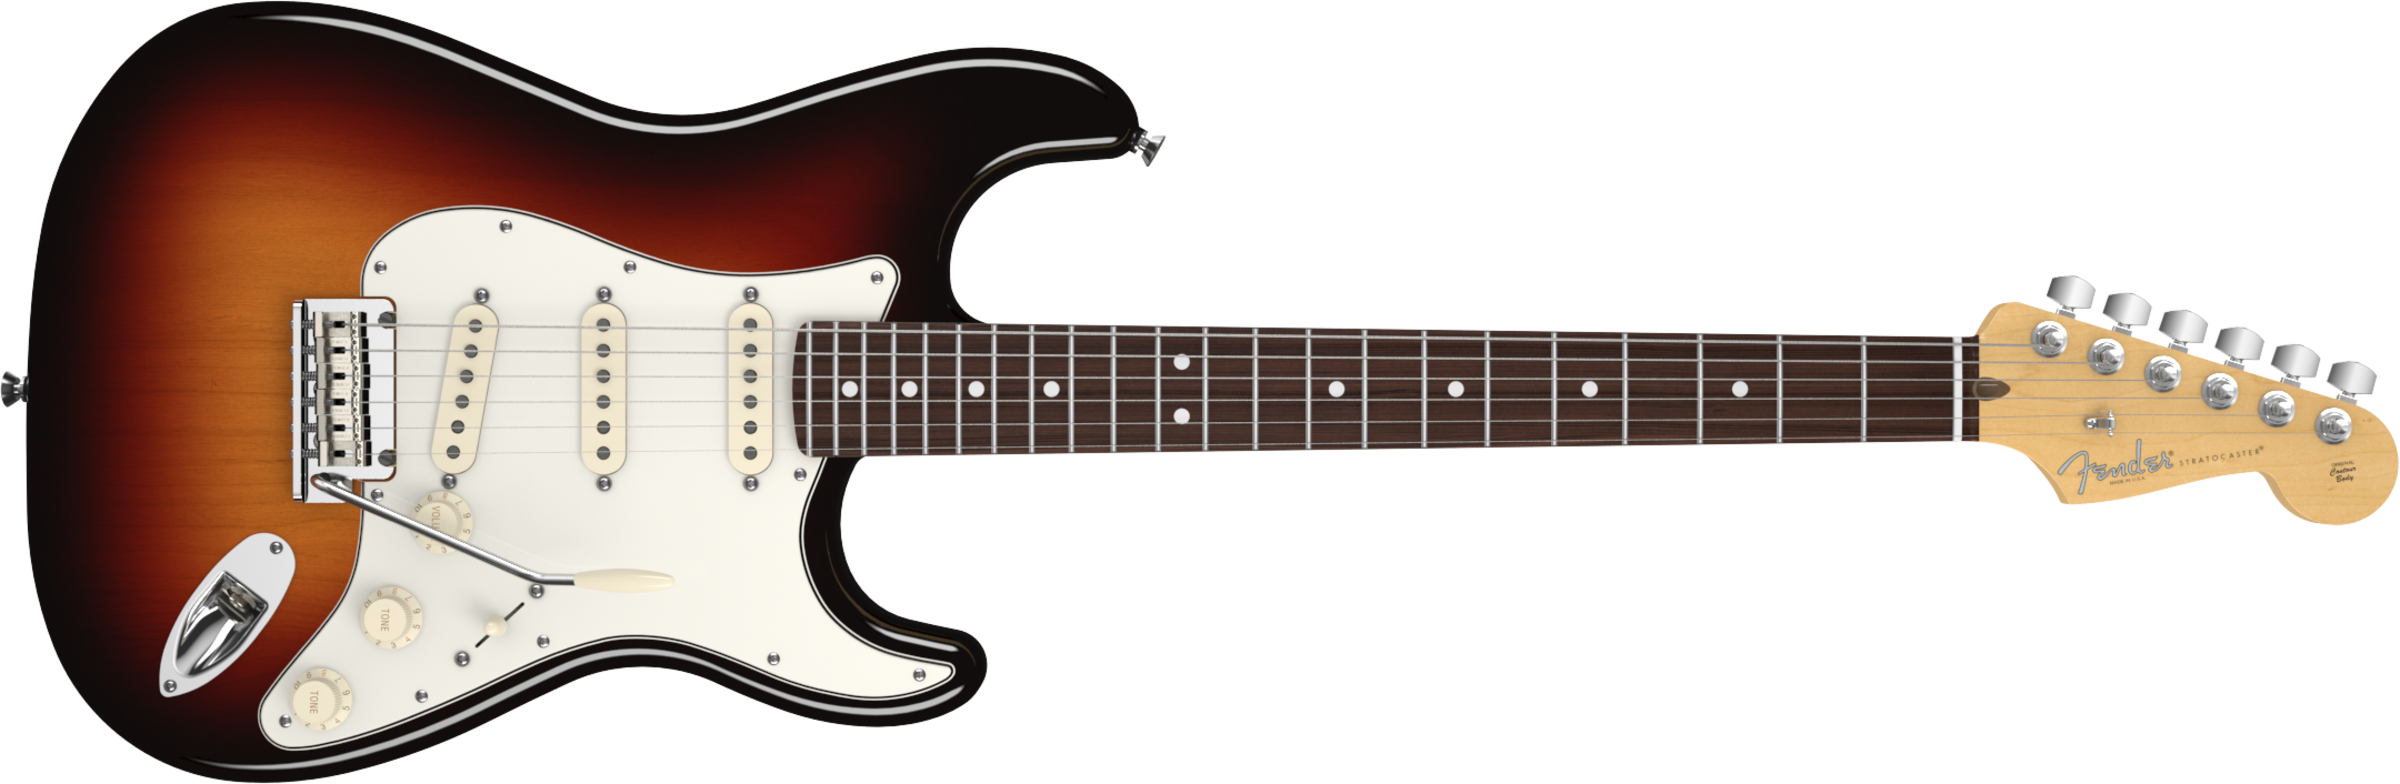 Fender Stratocaster To Play Jazz - Fender, Transparent background PNG HD thumbnail